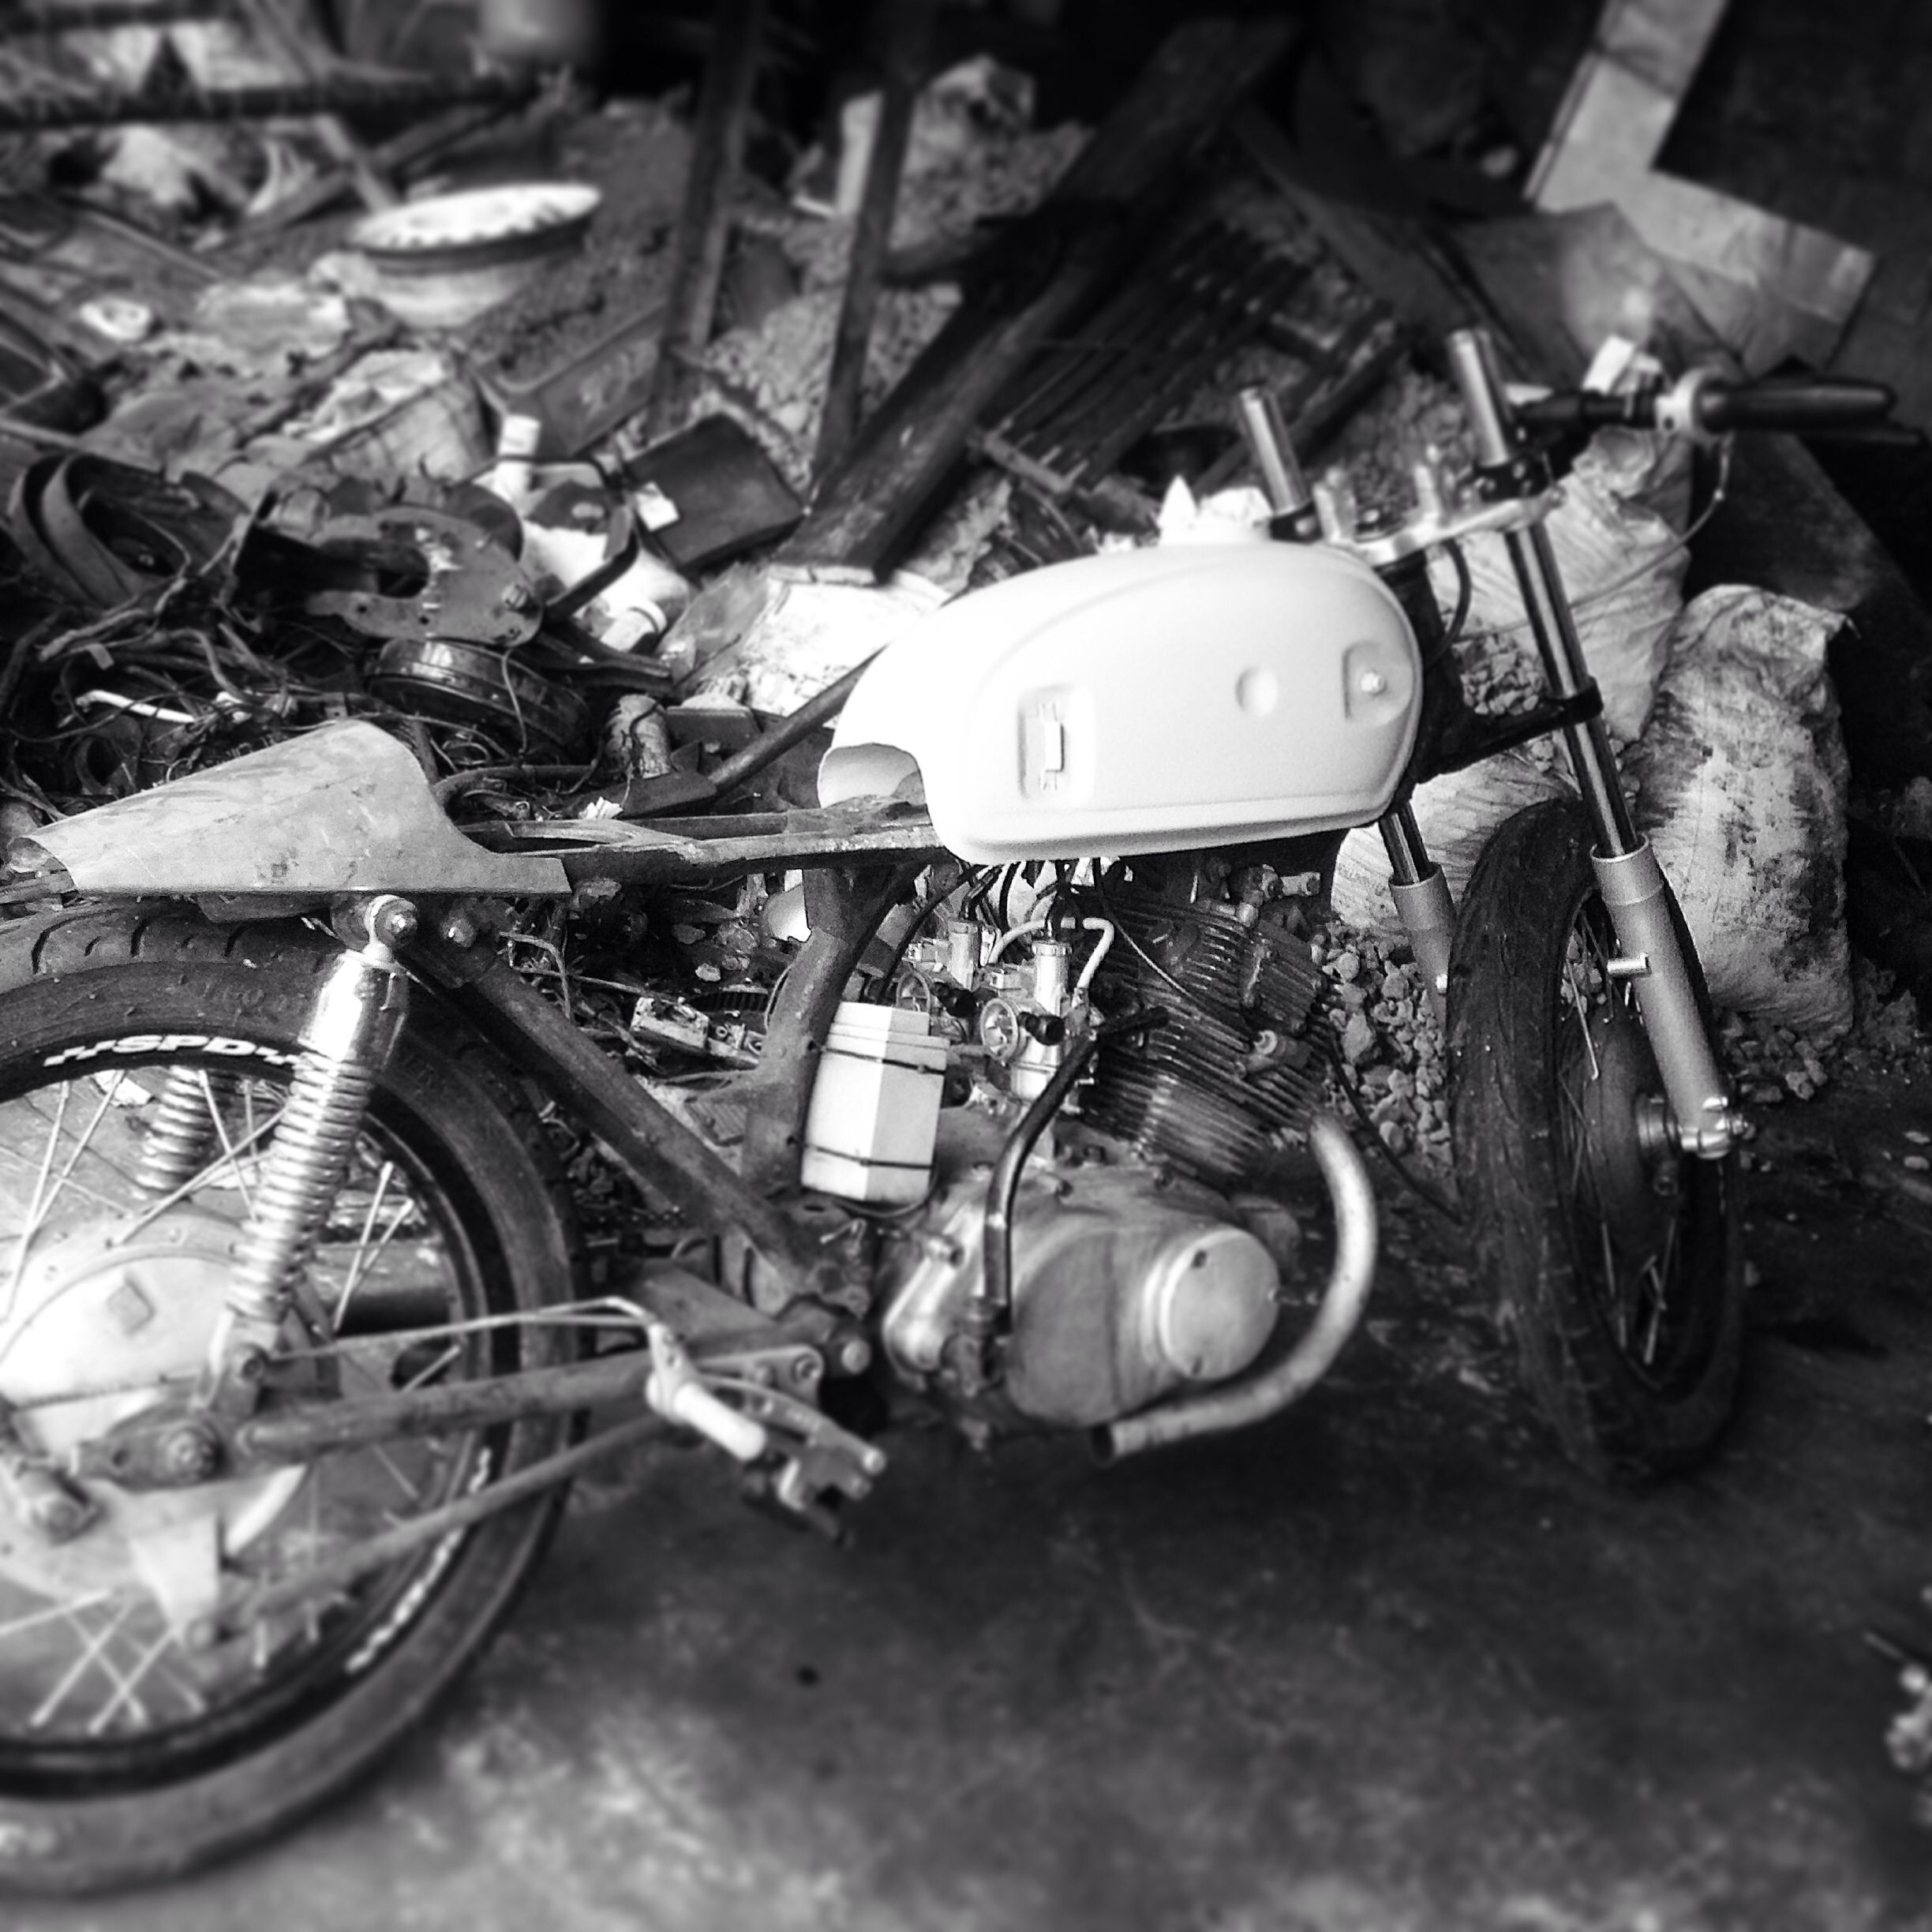 Pin on On going project hondas cd 175, cb 160 cafe racers